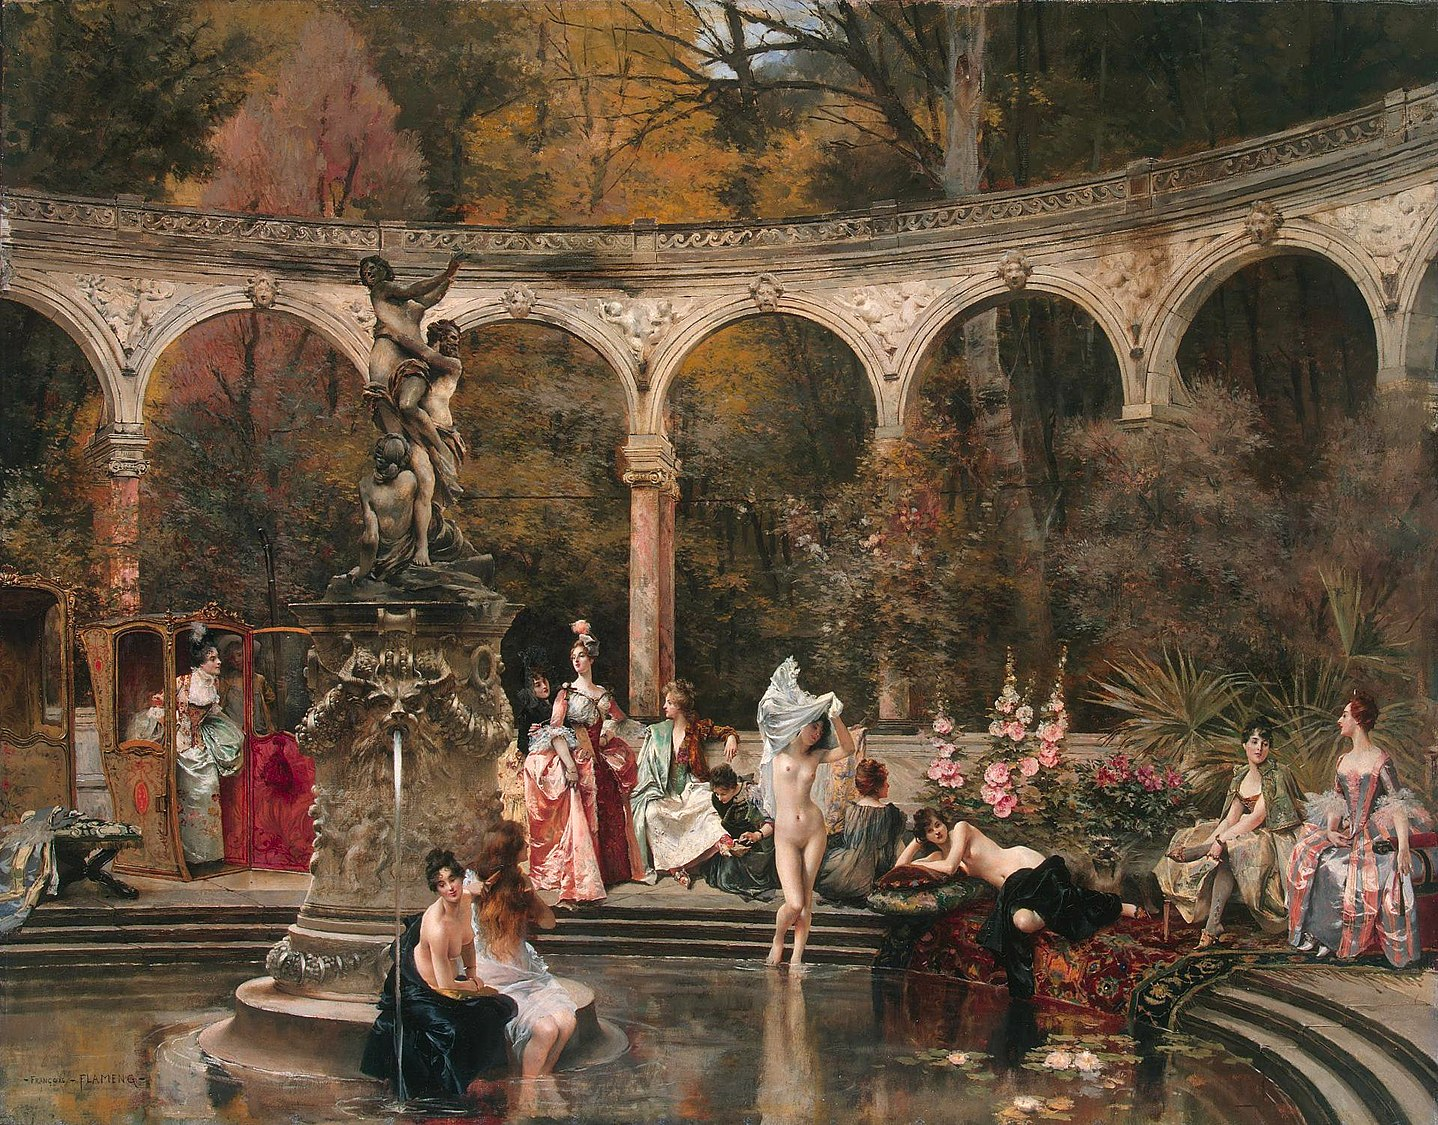 François Flameng - Bathing of Court Ladies in the 18th Century, 1888.jpg